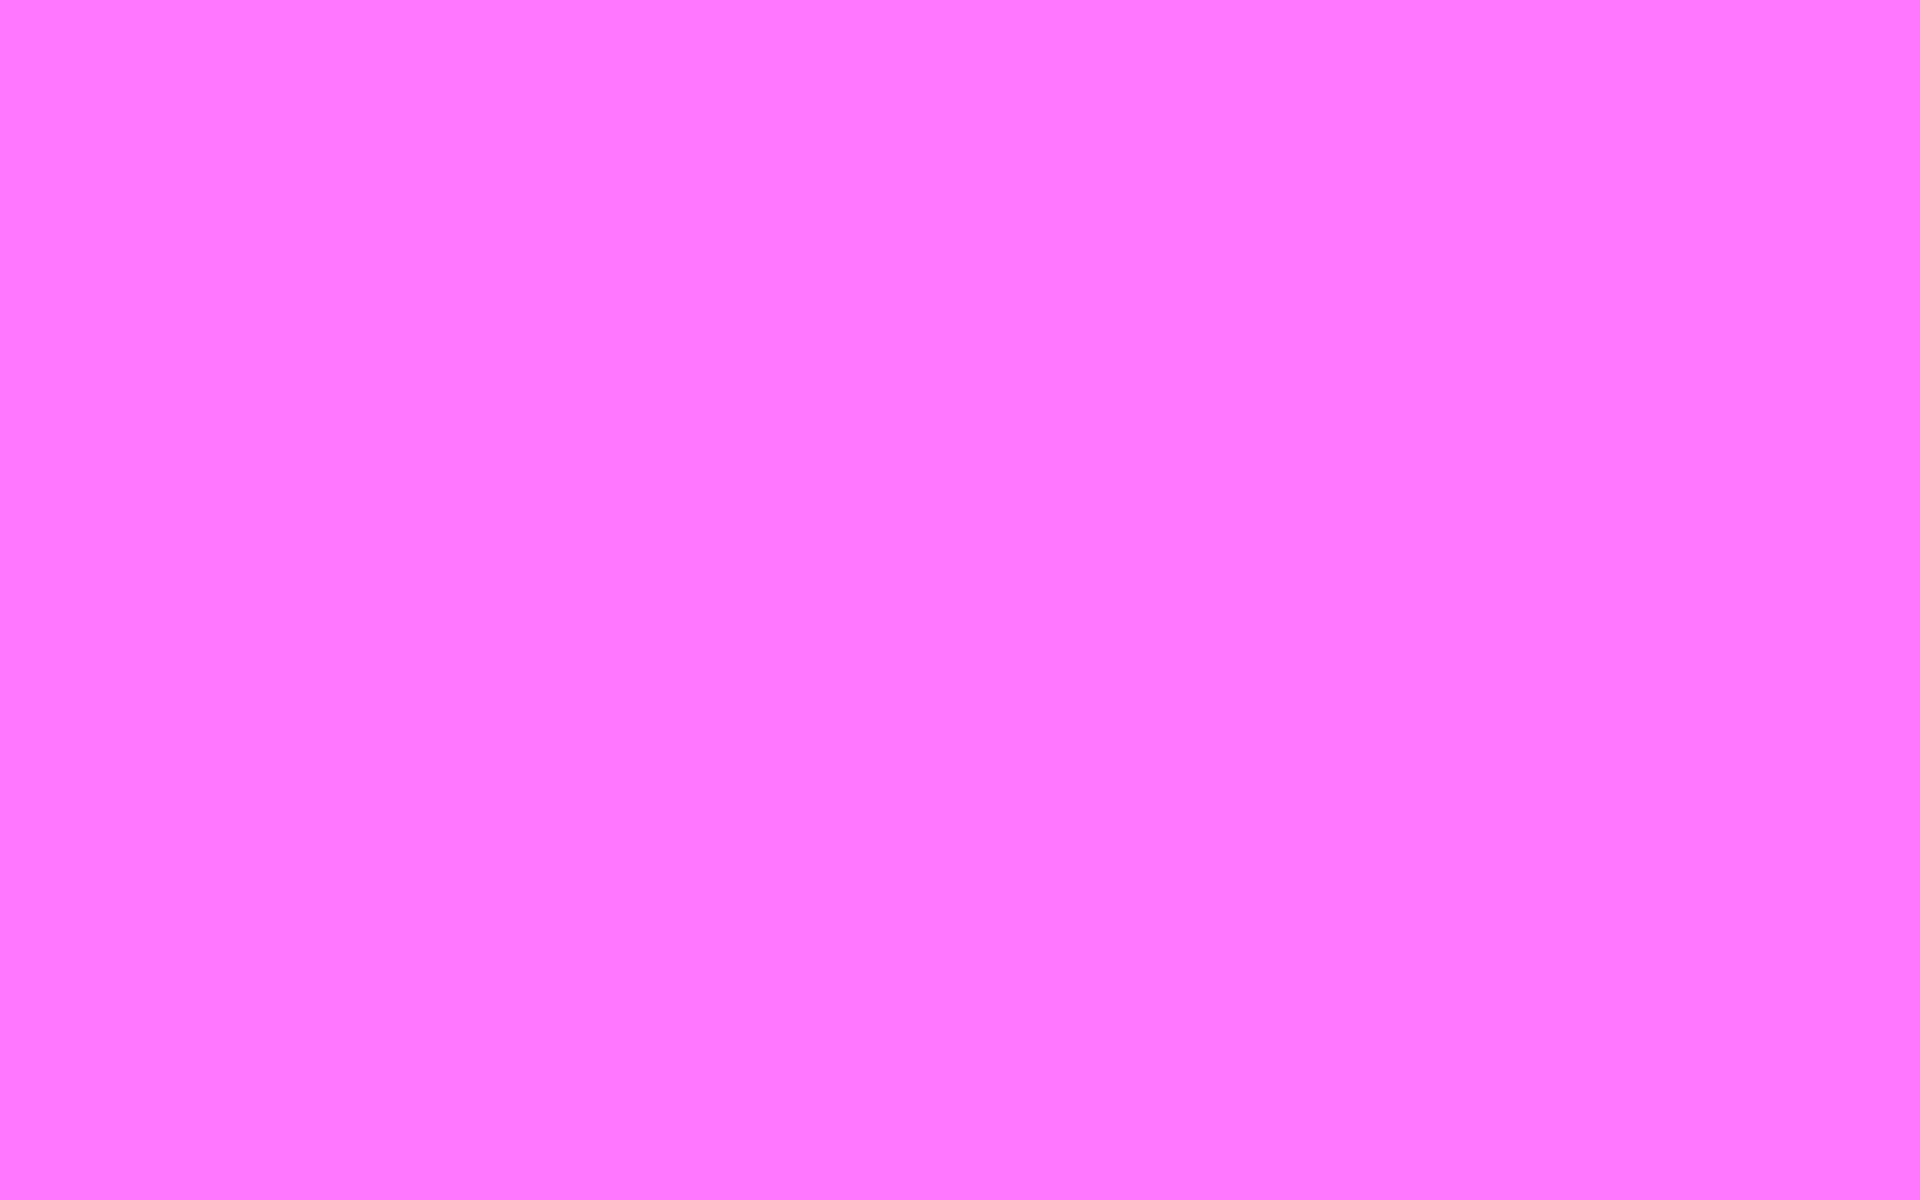 1920x1200 Fuchsia Pink Solid Color Background